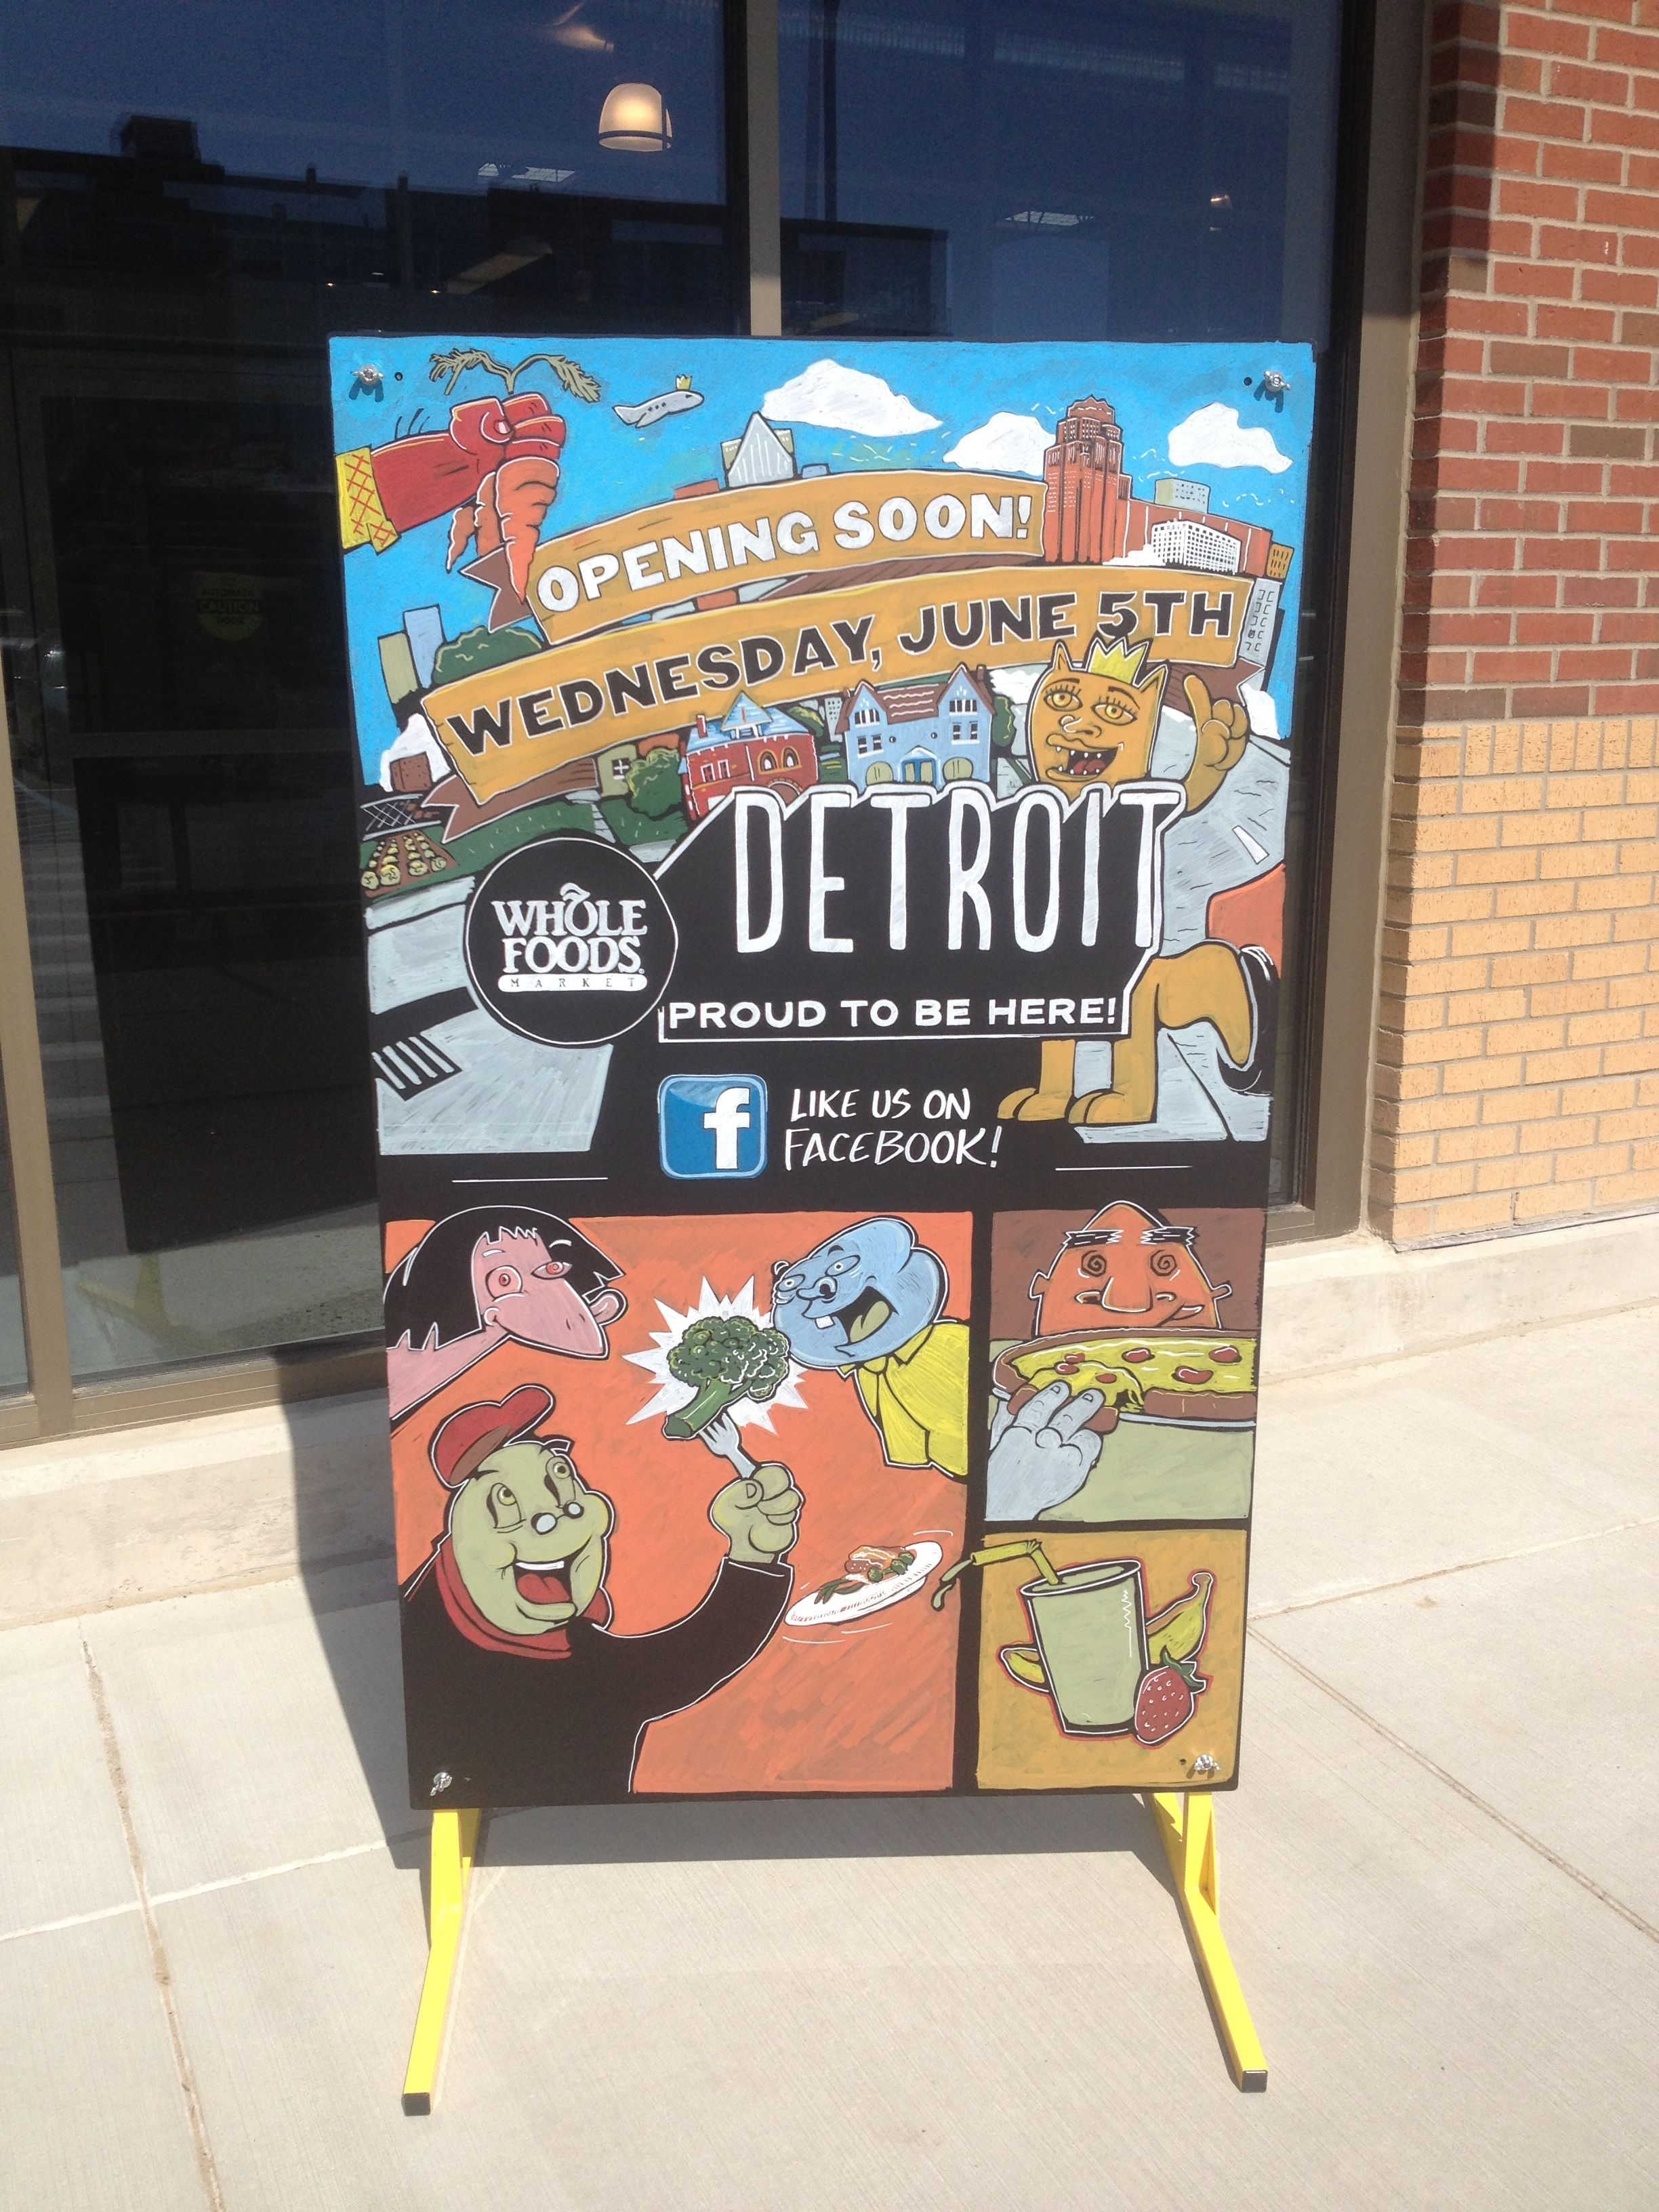 Fare thee well whole foods market detroit nathan mwsga